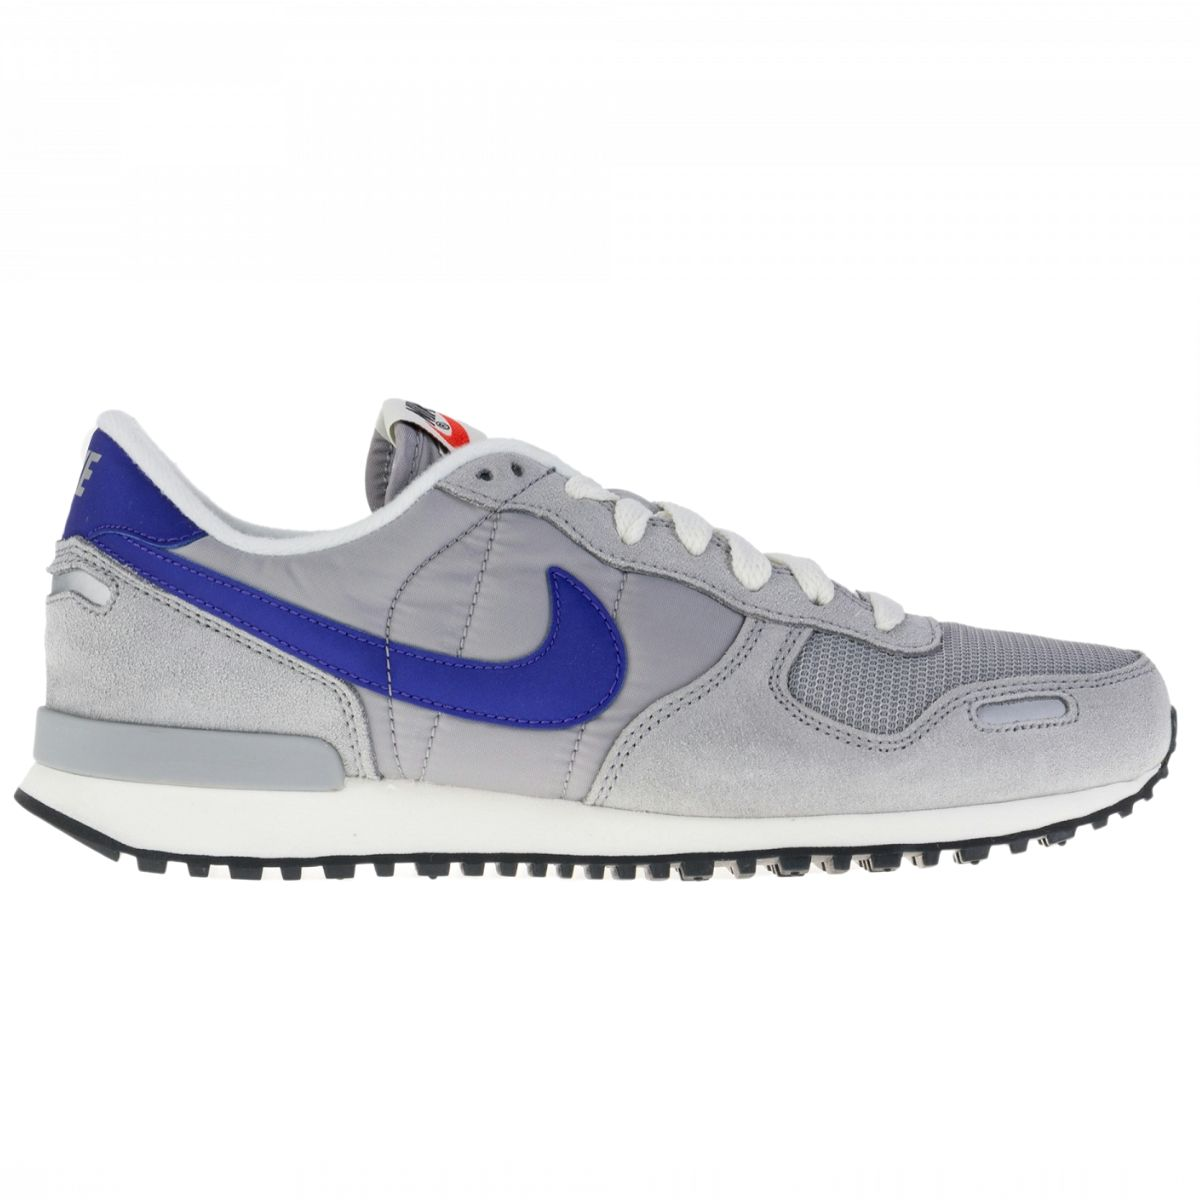 nike air vortex retro schuhe sneaker herren silber ebay. Black Bedroom Furniture Sets. Home Design Ideas